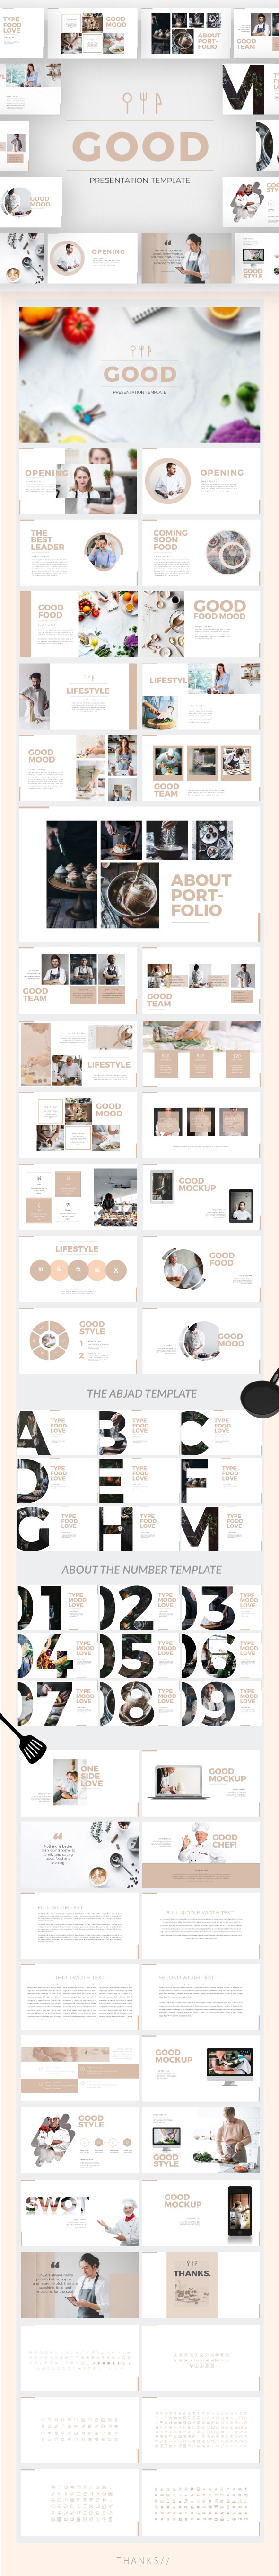 Good - Keynote Presentation Template - Keynote Templates Presentation Templates